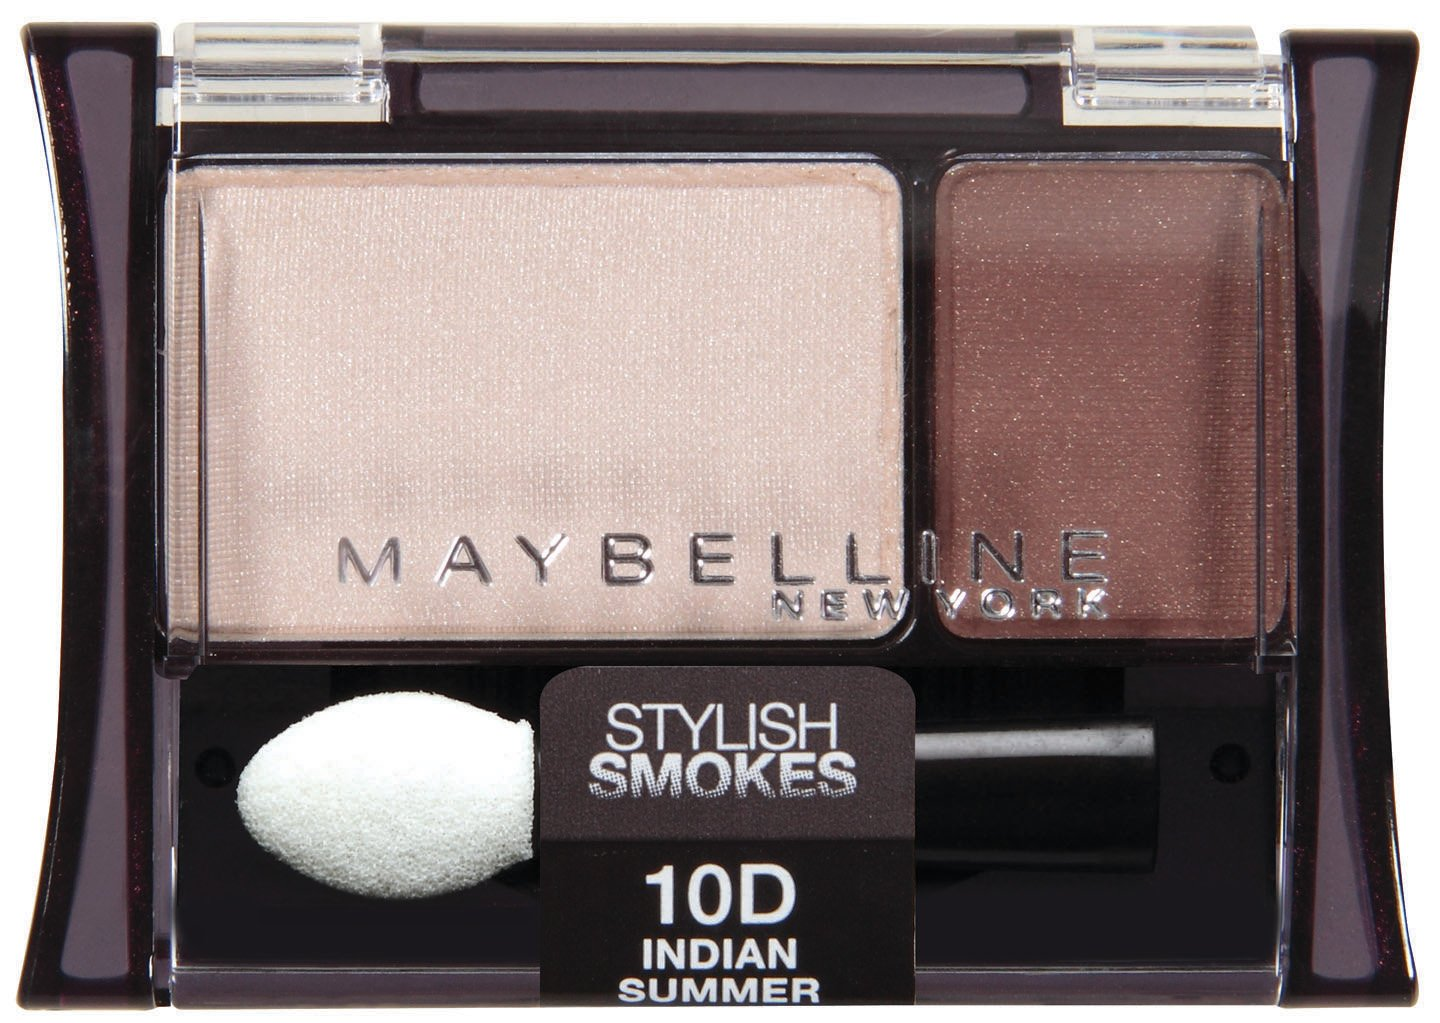 Maybelline New York Expert Wear Eyeshadow Duos, 10d Indian Summer Stylish Smokes, 0.08 Ounce